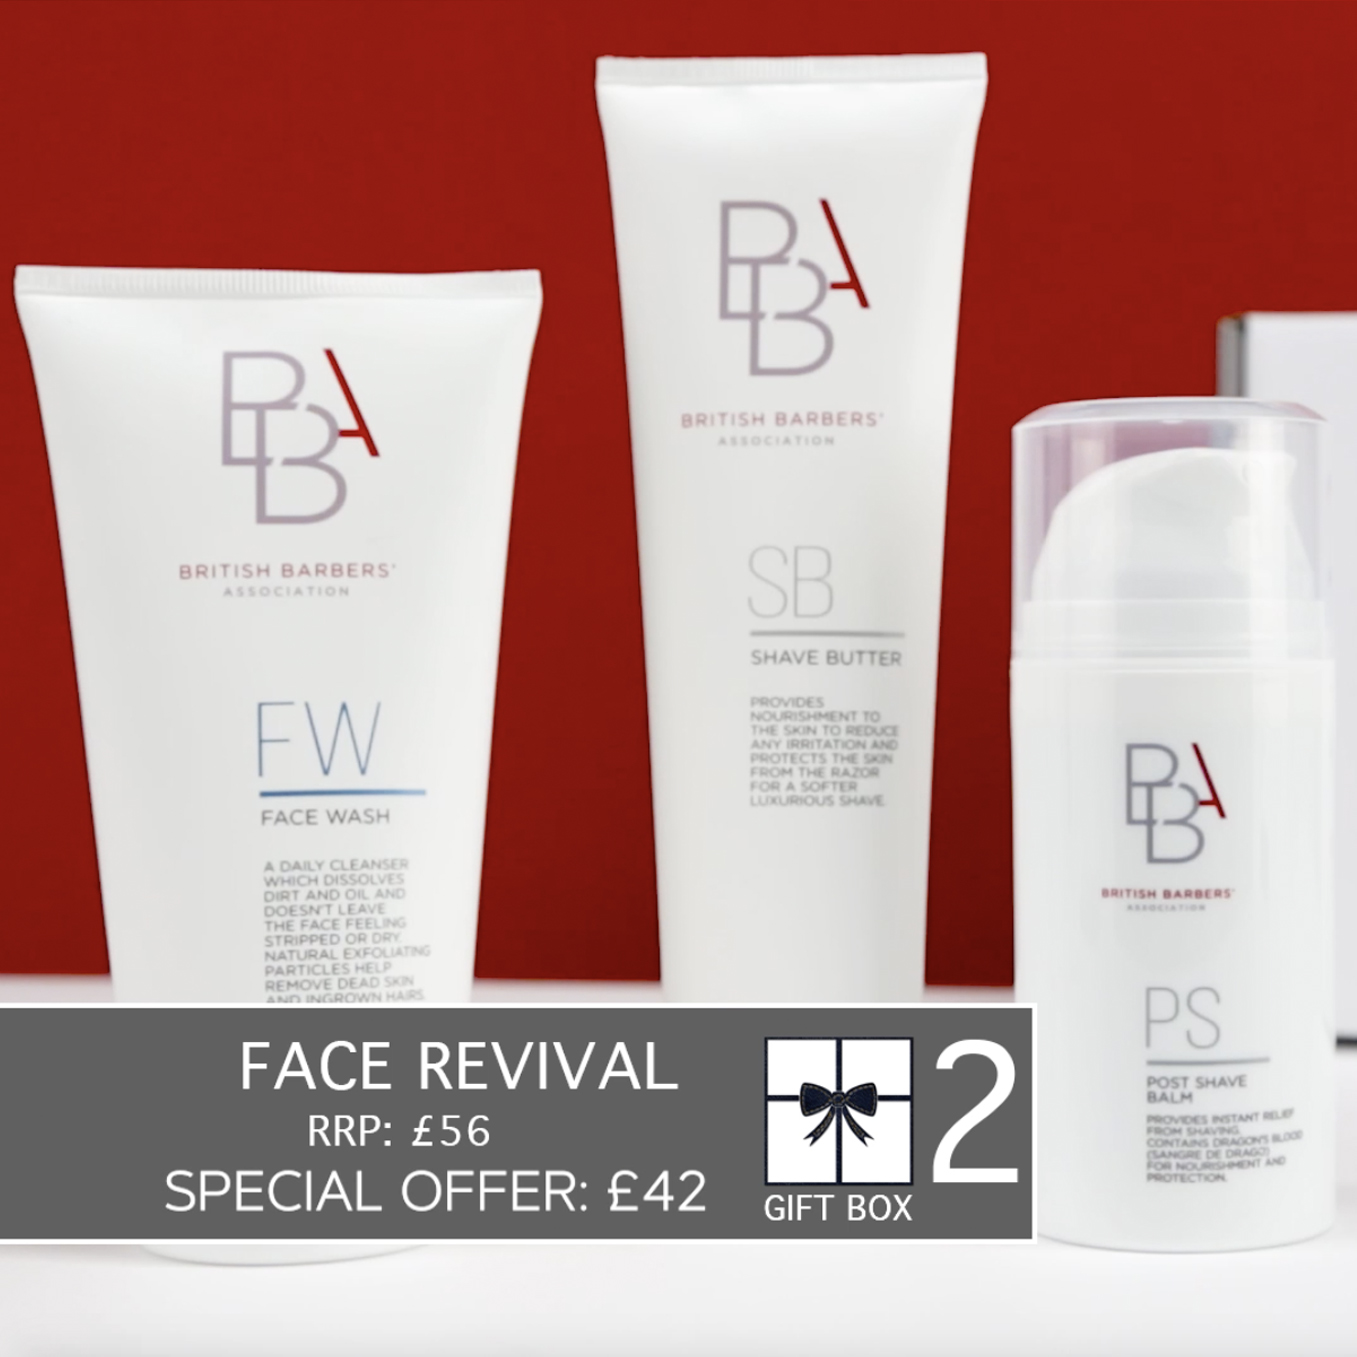 Skin Revival - Gift Box : Normal RRP £56.00